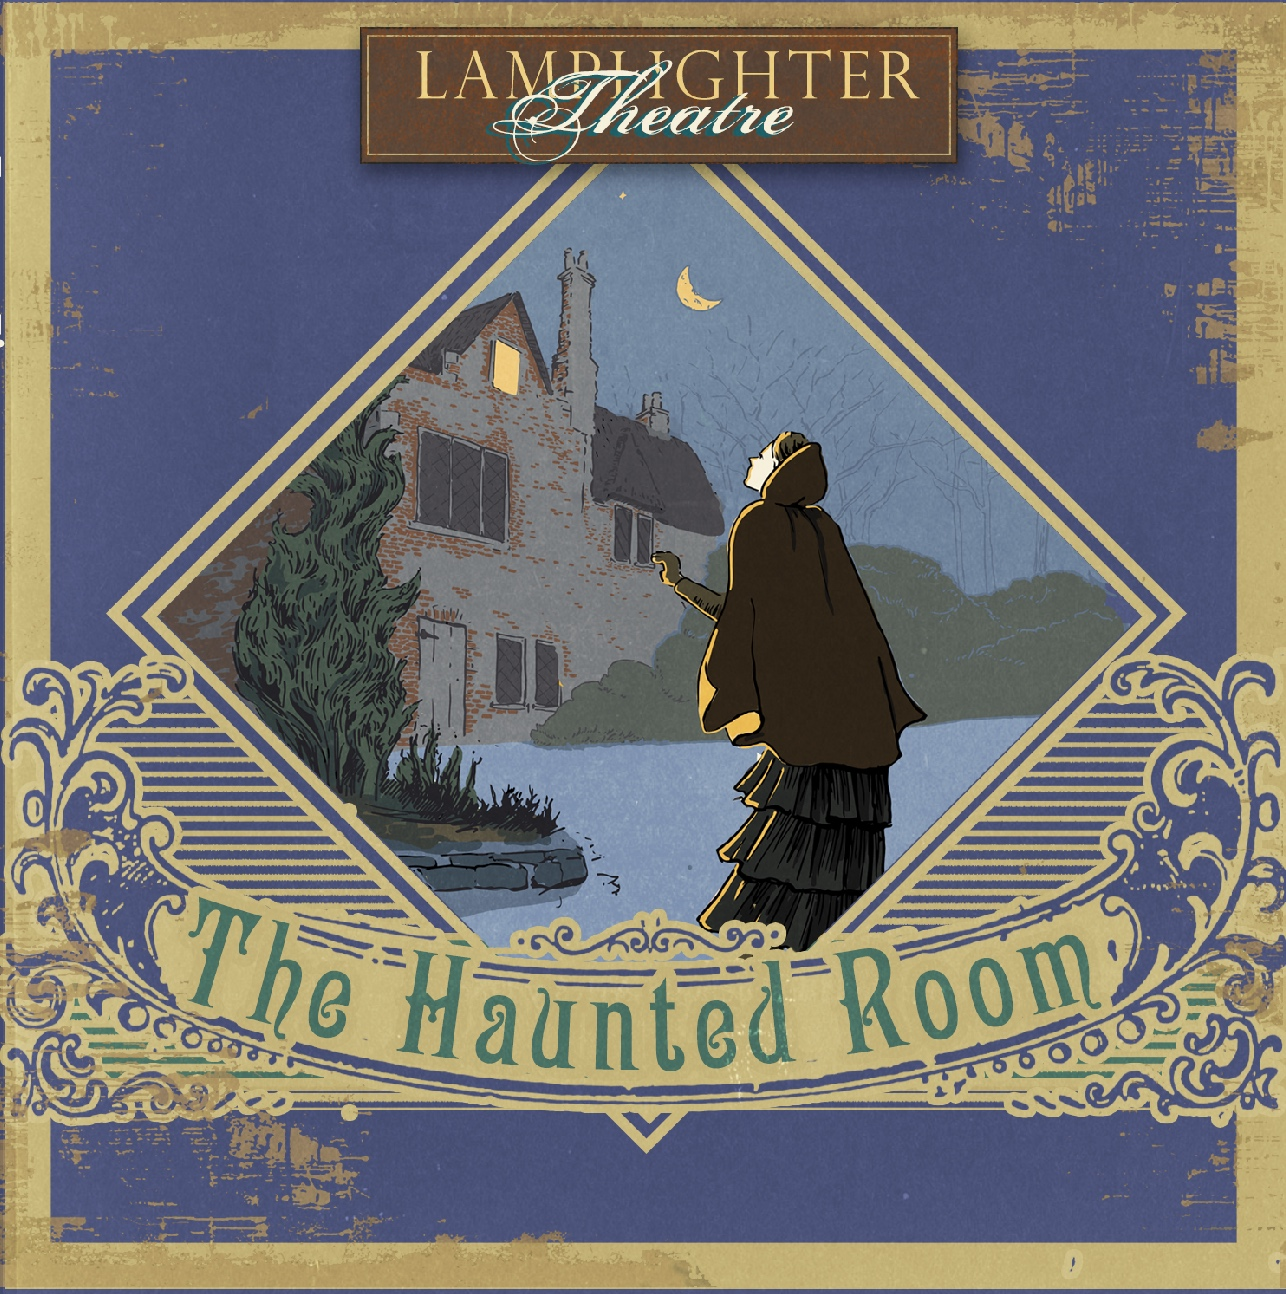 Haunted Room, The - Dramatic Audio MP3 Download